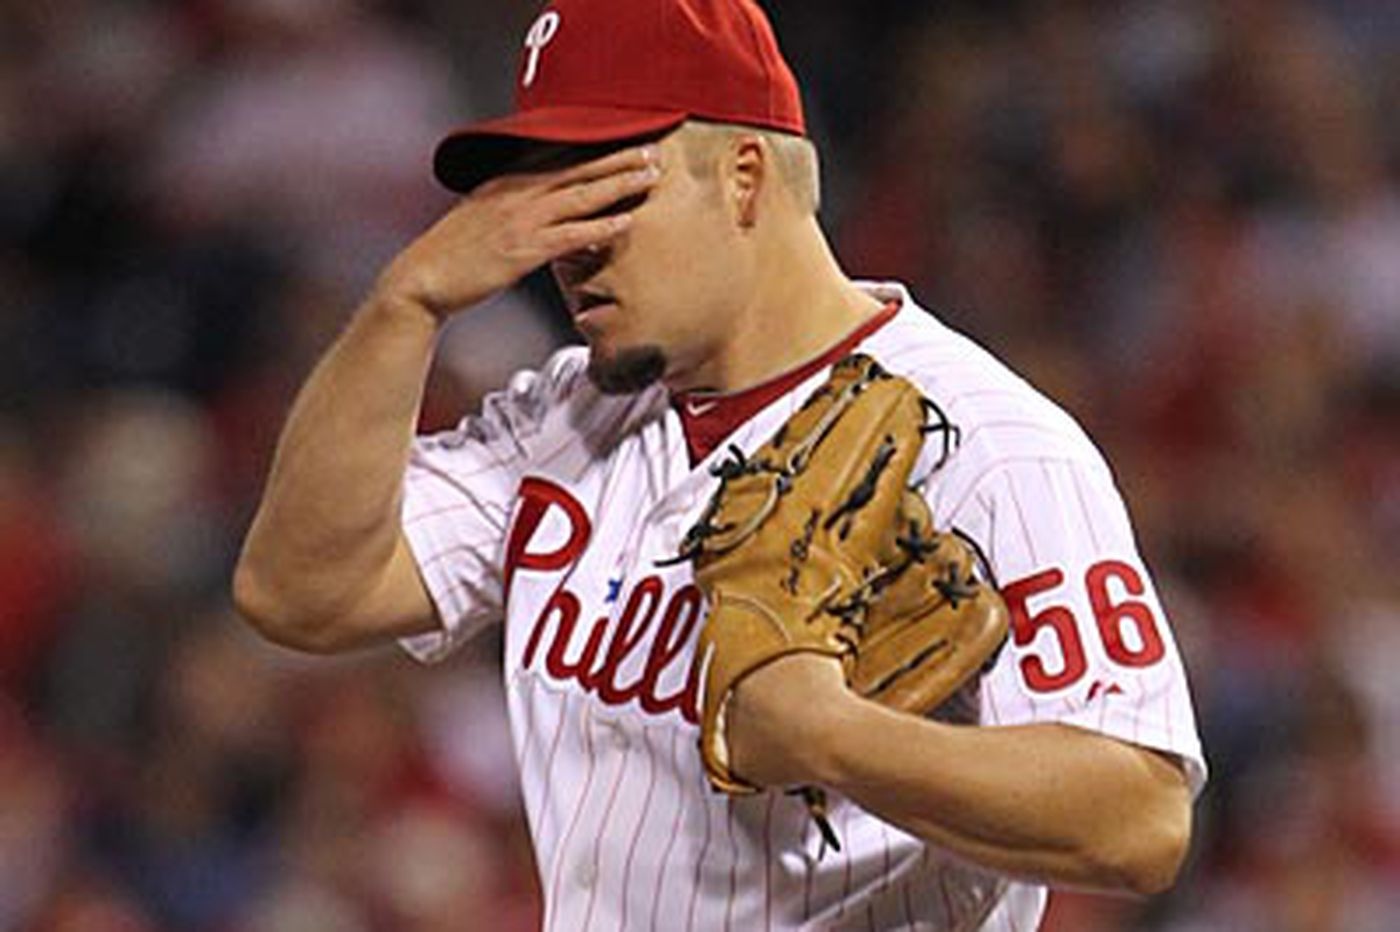 Phillies' Blanton goes to disabled list with elbow impingement